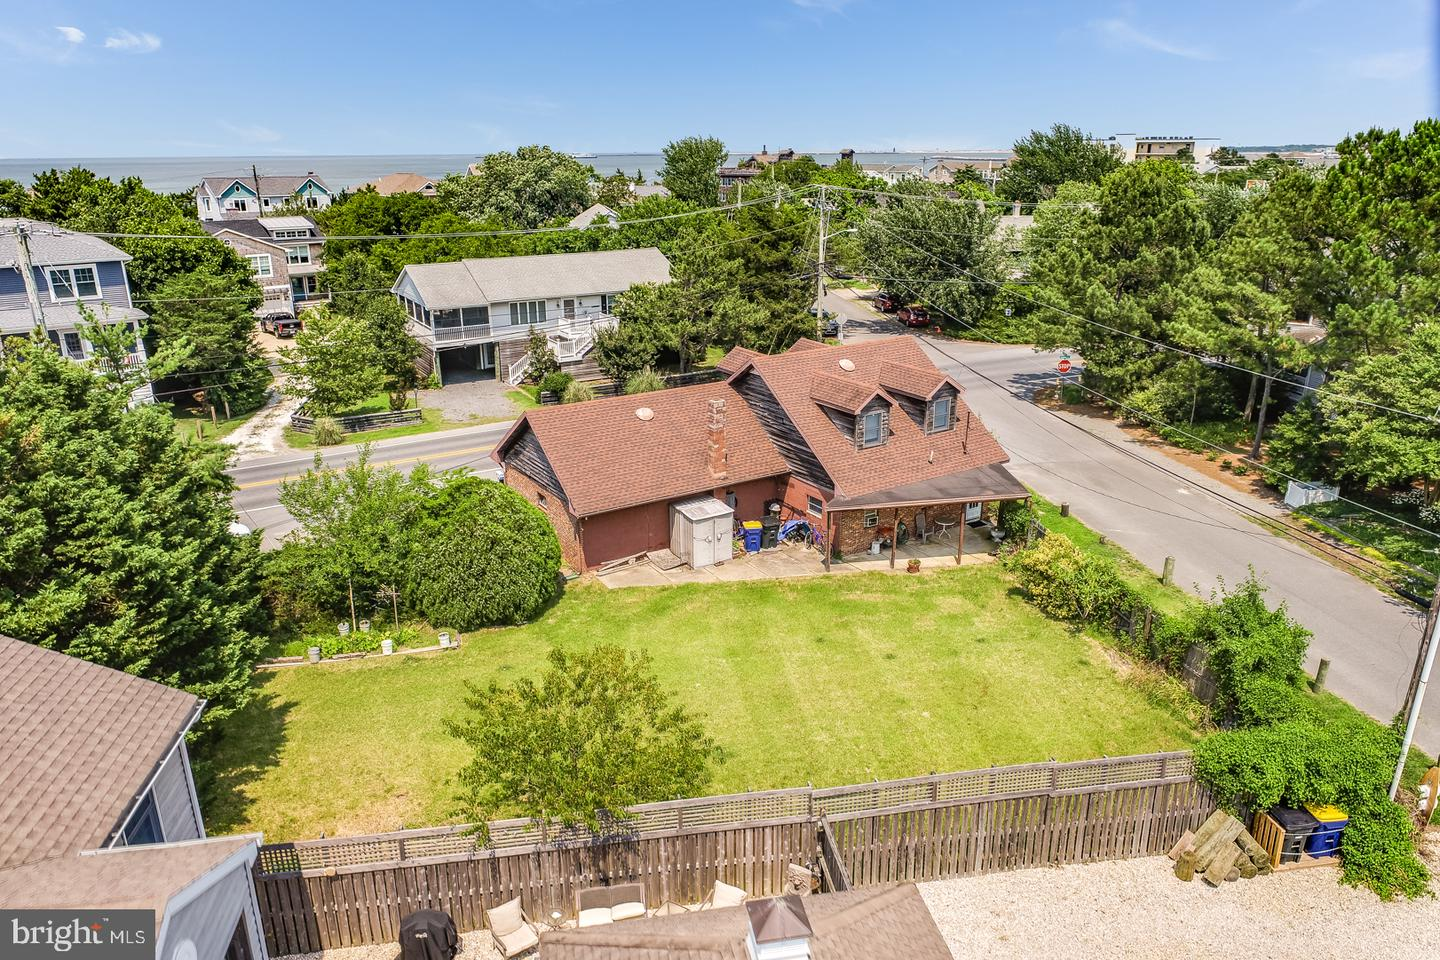 DESU2001918-800843258170-2021-07-14-19-52-40 Lots and Land for sale in Rehoboth Beach, Dewey Beach and More - Rehoboth Beach Real Estate - Bryce Lingo and Shaun Tull REALTORS, Rehoboth Beach, Delaware